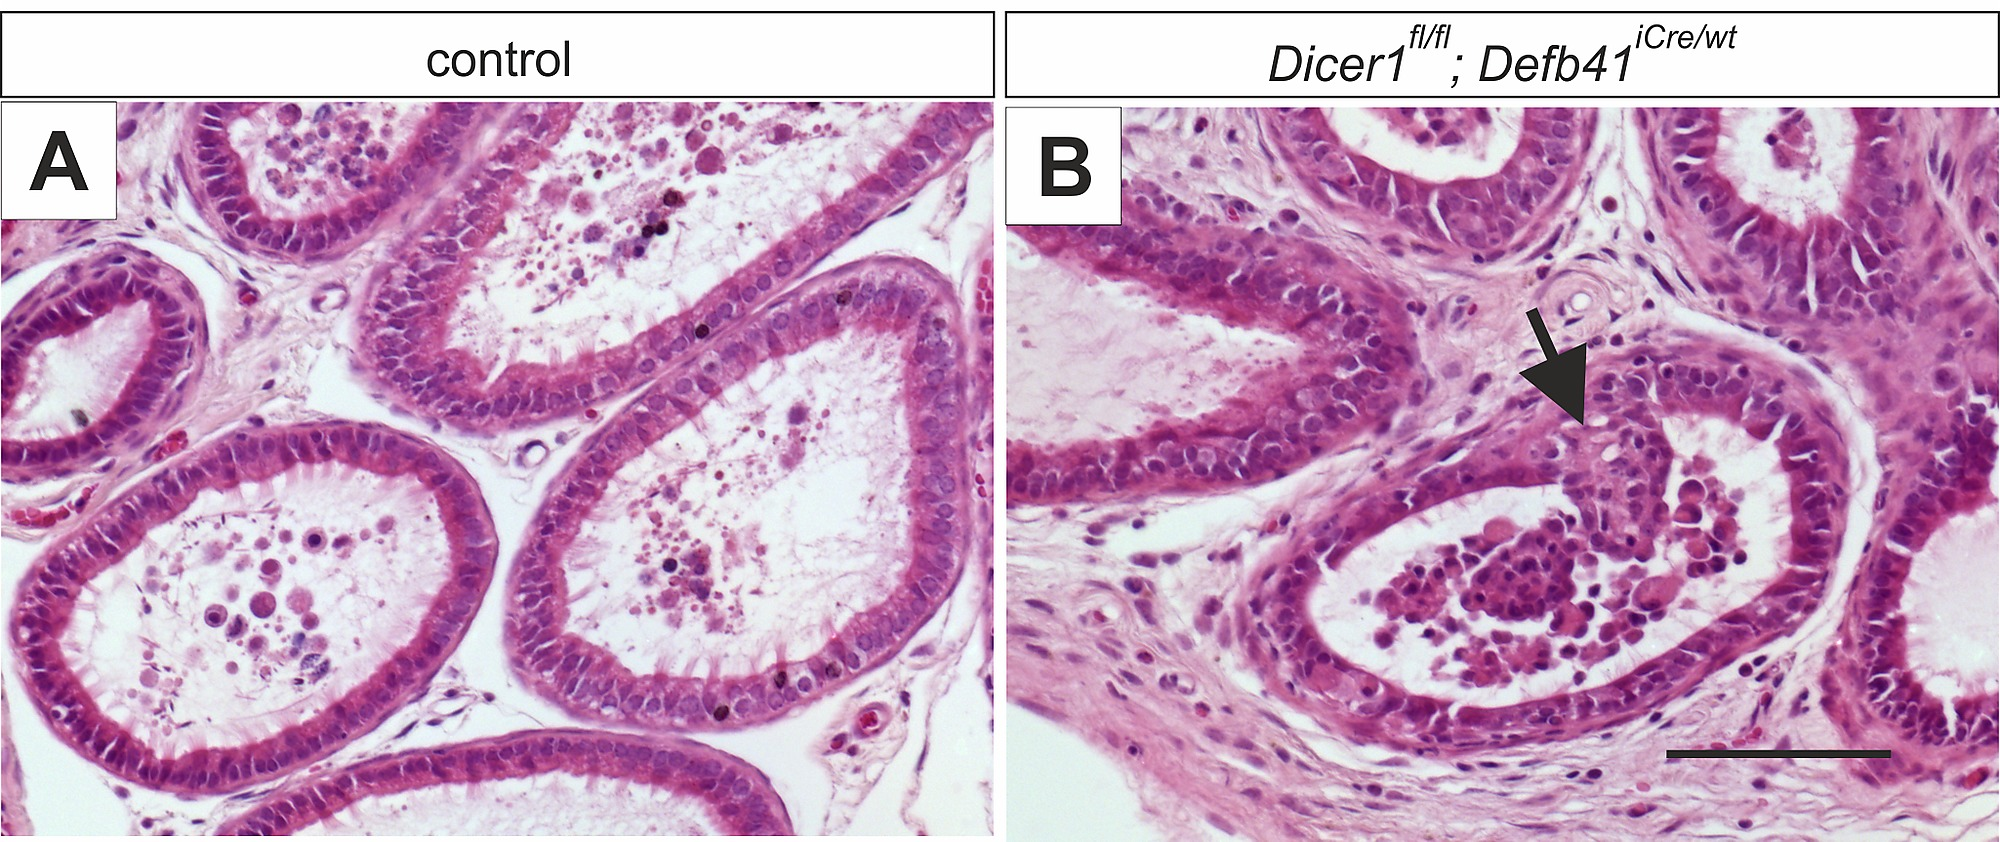 Dicer1 Ablation In The Mouse Epididymis Causes Dedifferentiation Of